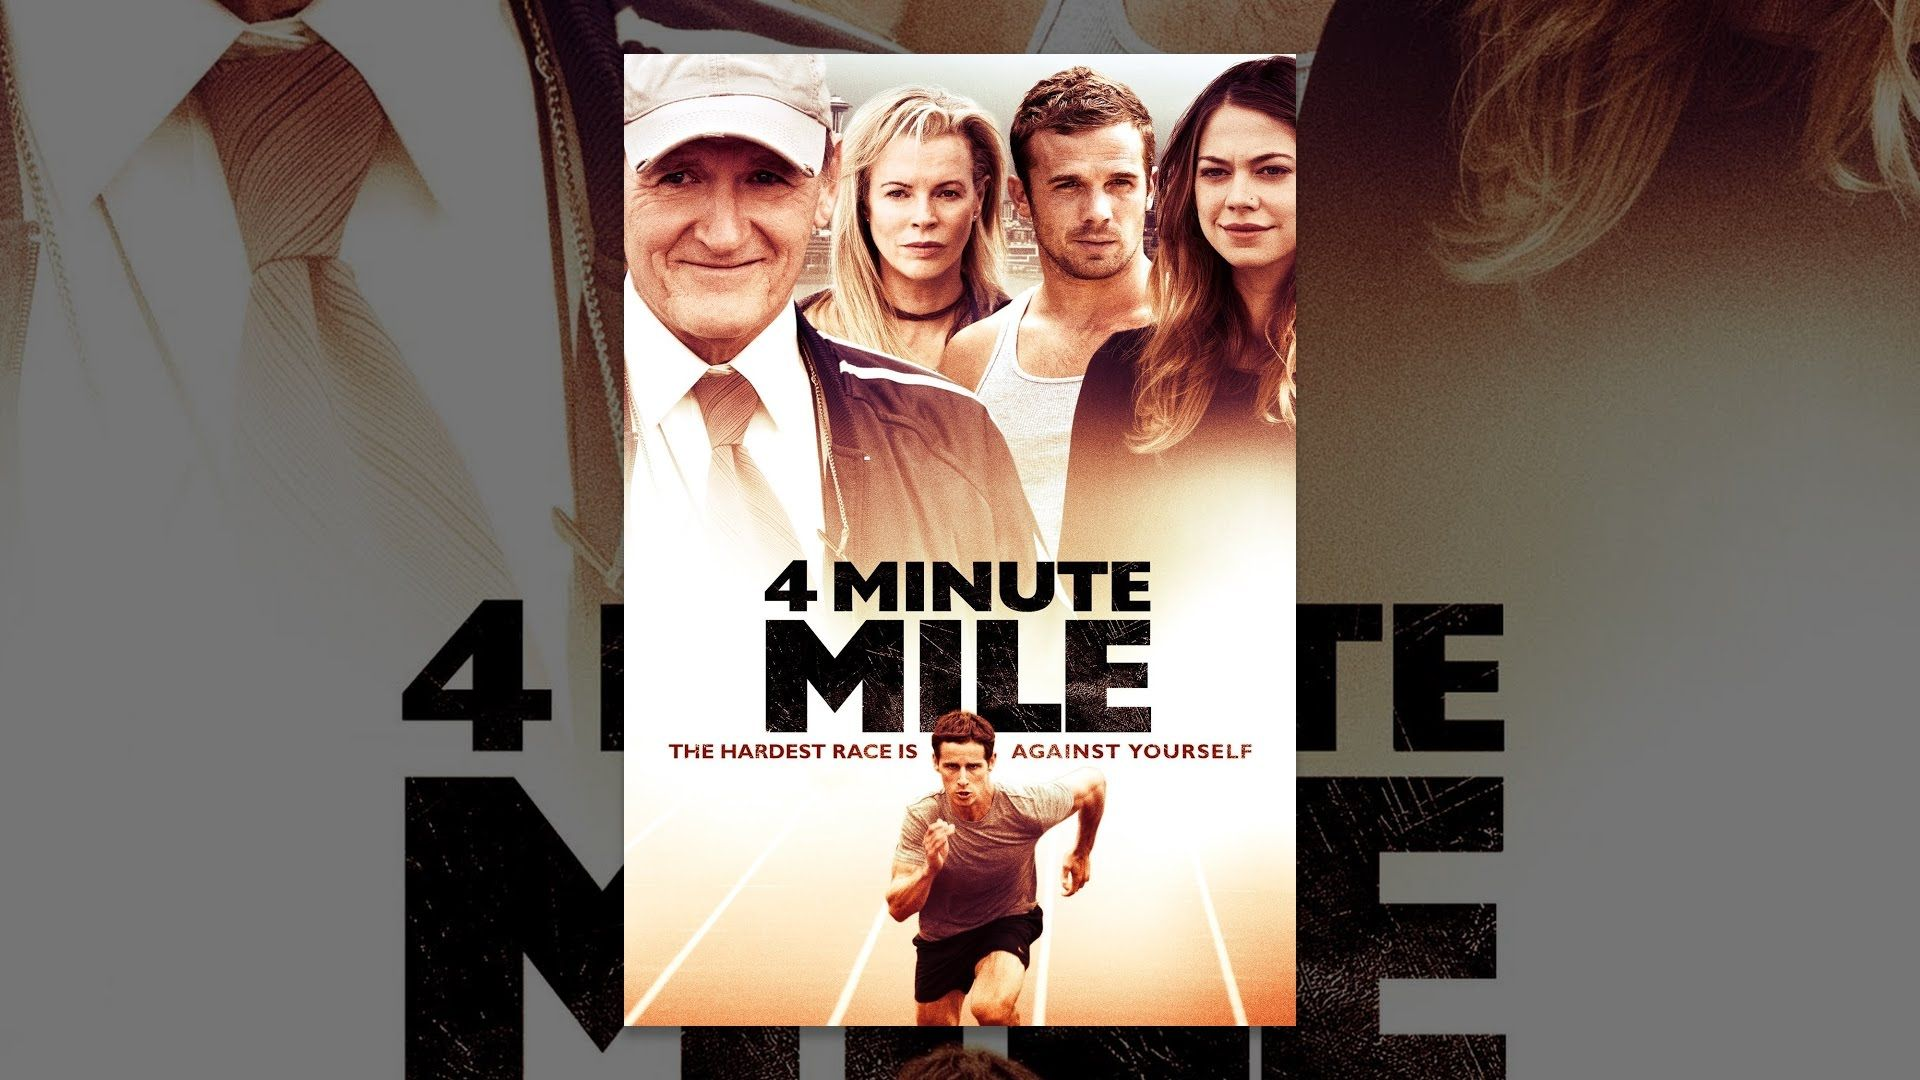 4 Minute Mile in 2020 Youtube movies, Inspirational